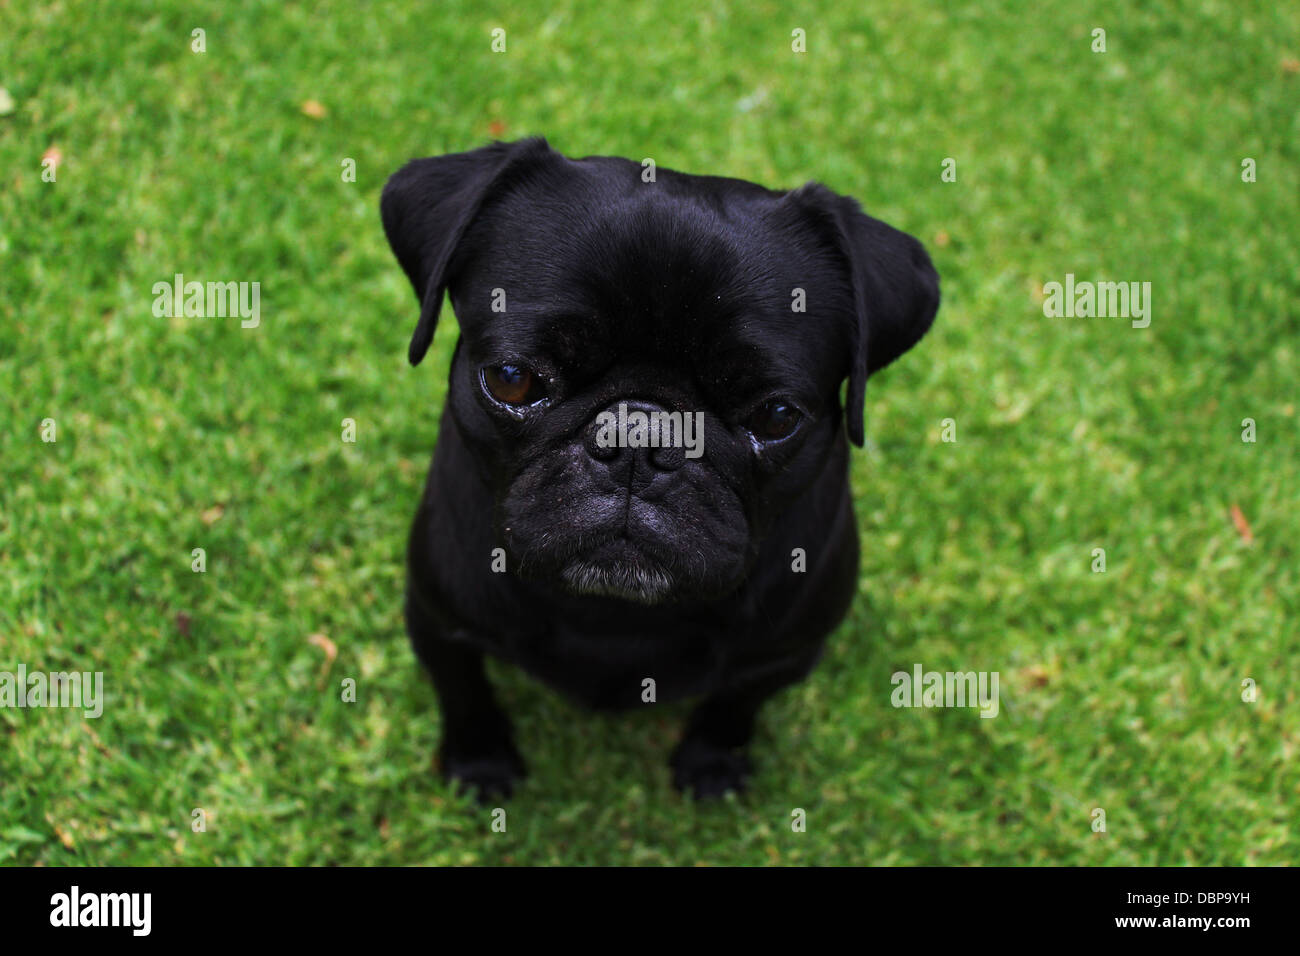 Adorable black pug outdoors with a green grass background - Stock Image